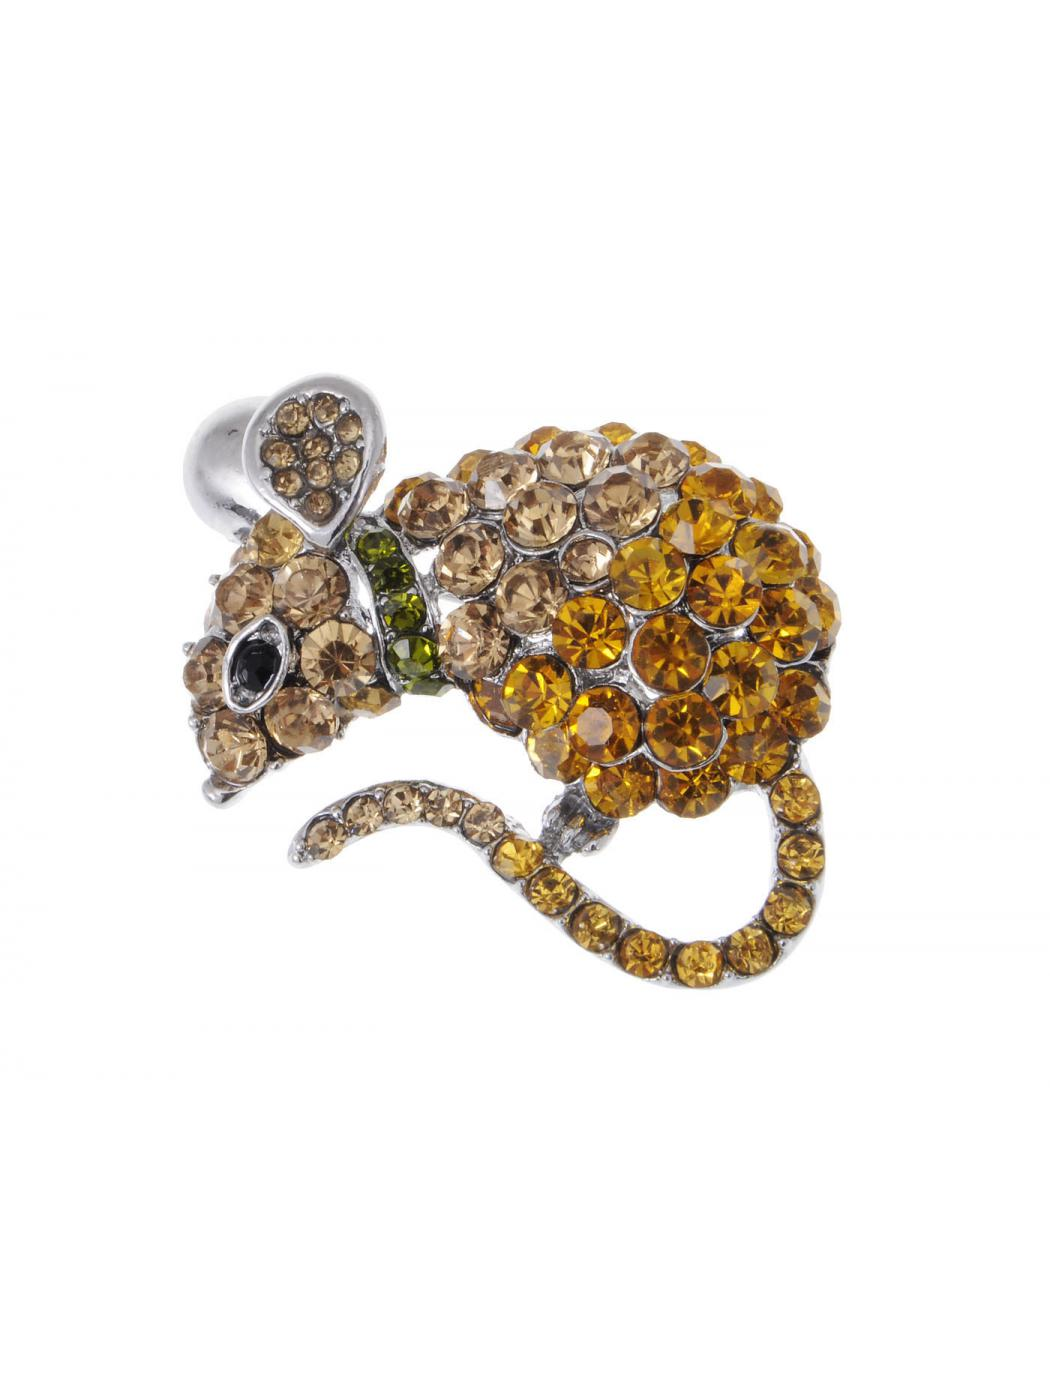 Topaz Crystal Rhinestone Mouse Mice Pet Hamster Cheese Jewel Fashion Pin Brooch by